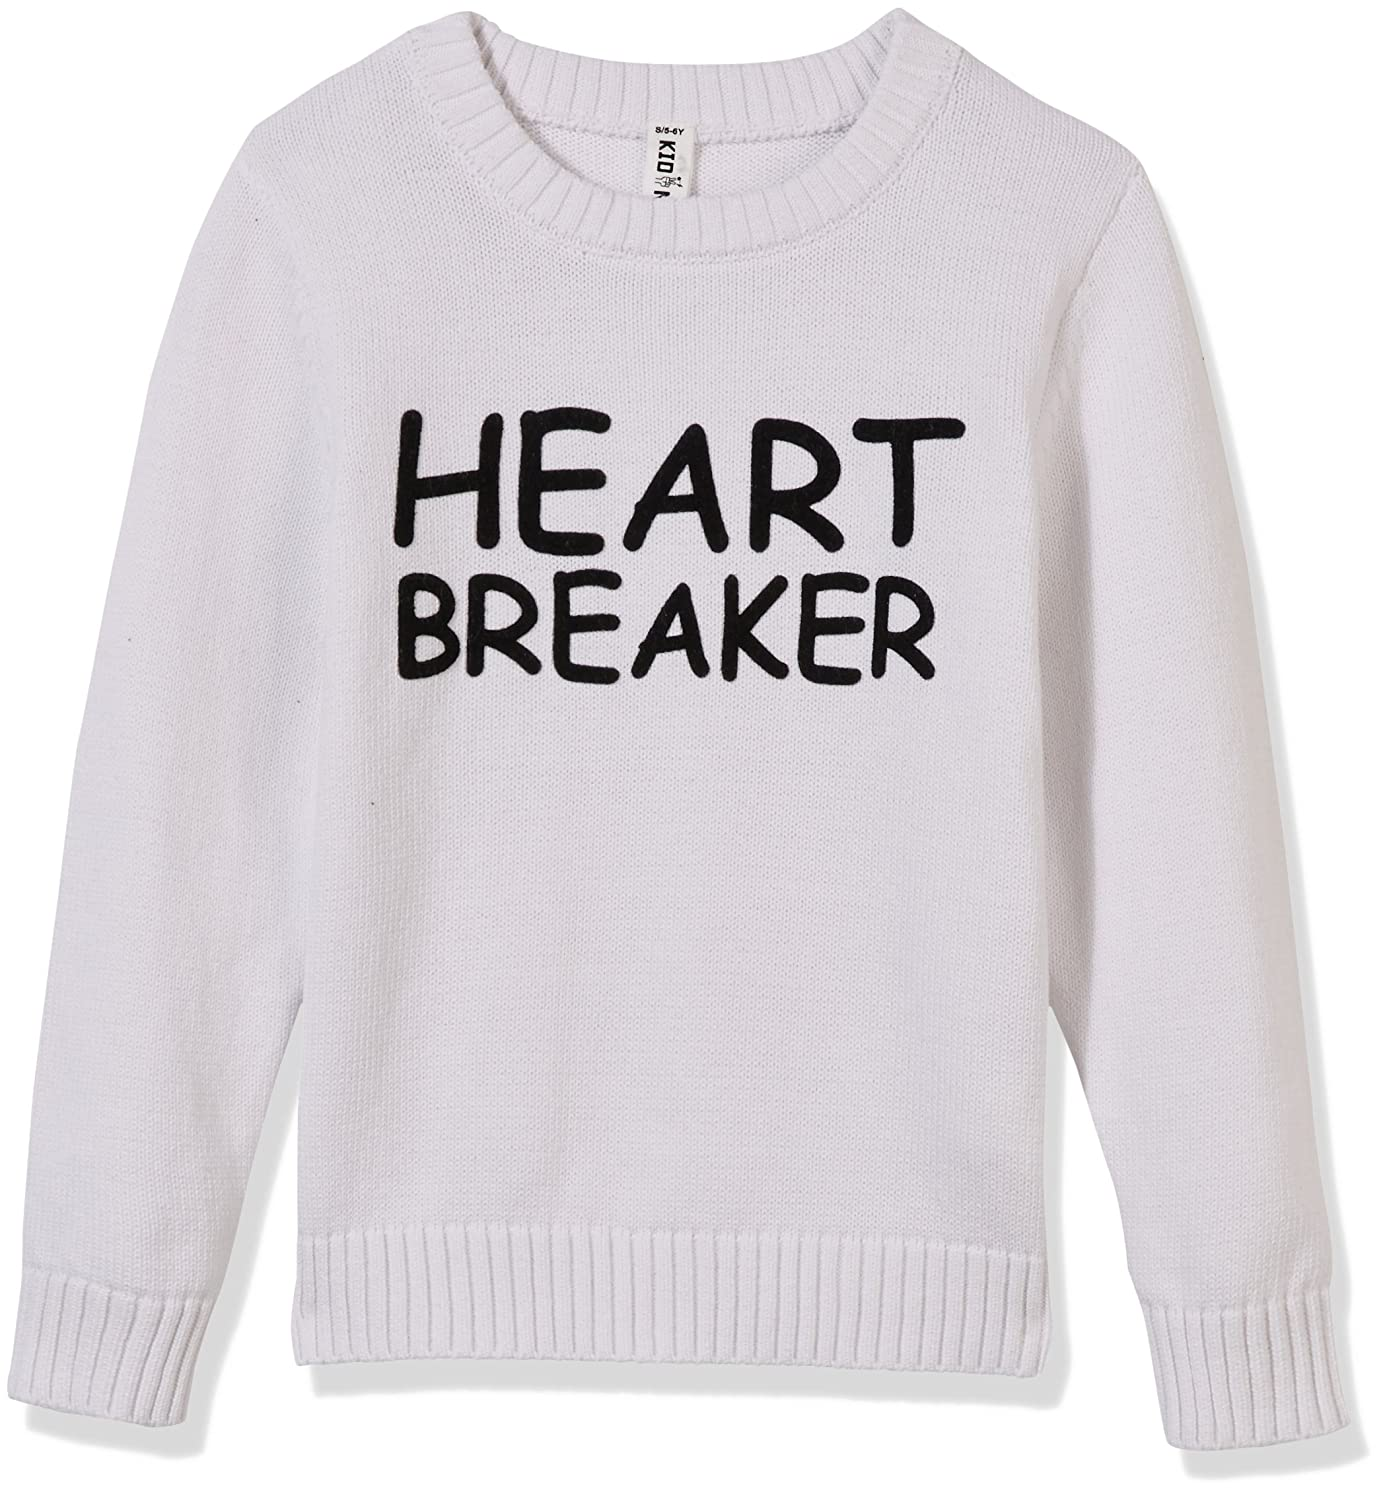 Kid Nation Kids' Sweater Crew Neck Long Sleeve Cotton Casual Pullover with Print Letters for Boys or Girls 8KNU011